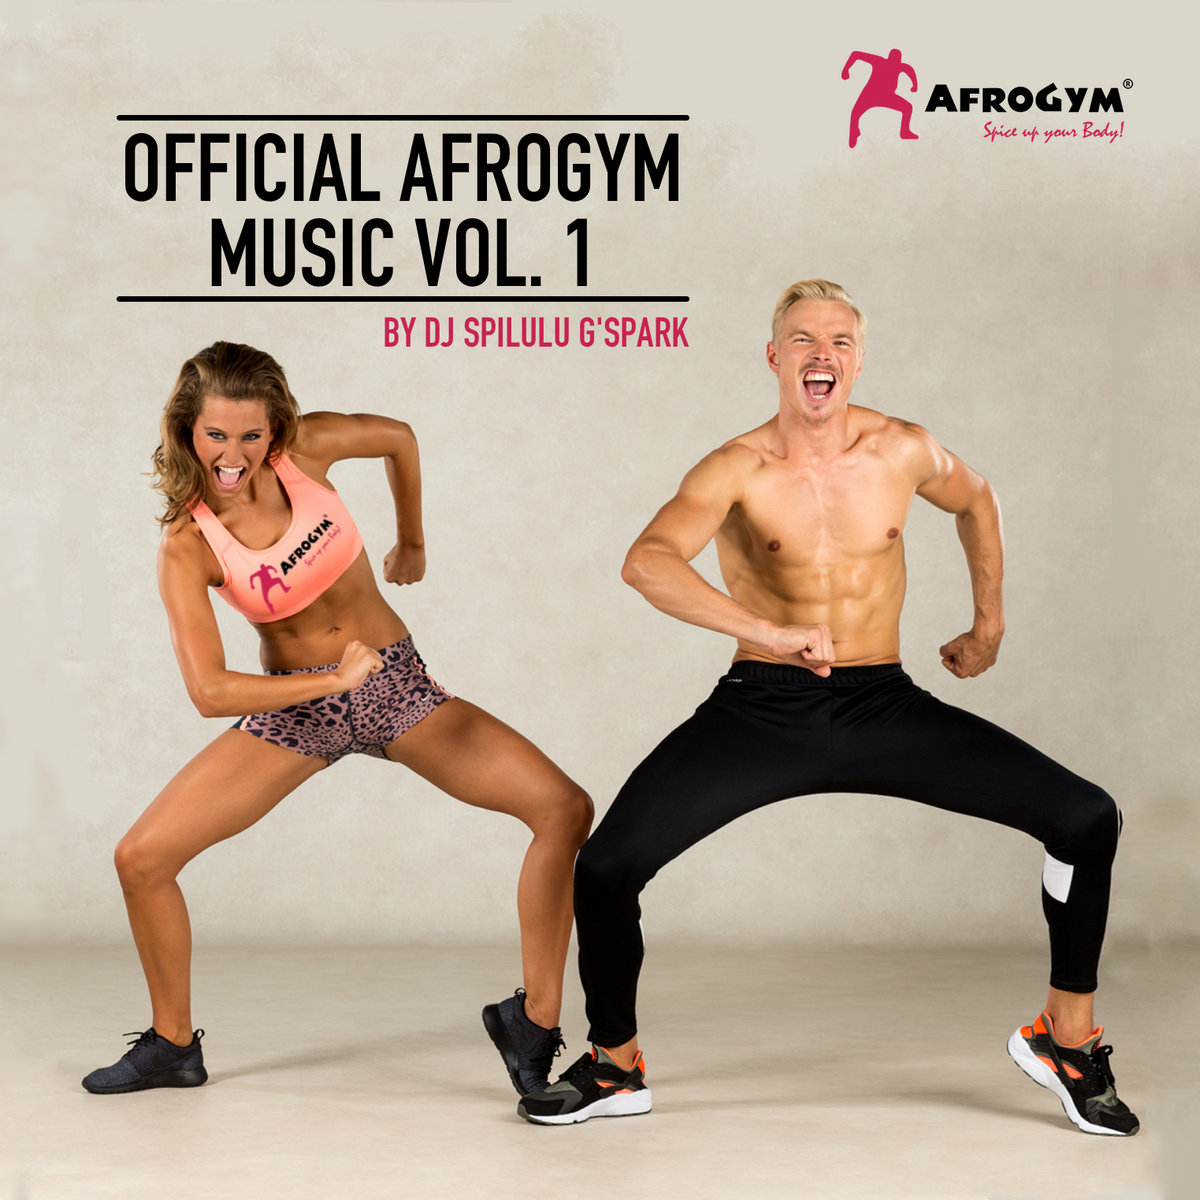 Vagabond Vagabond Vol 24: Afrogym Music Vol.1